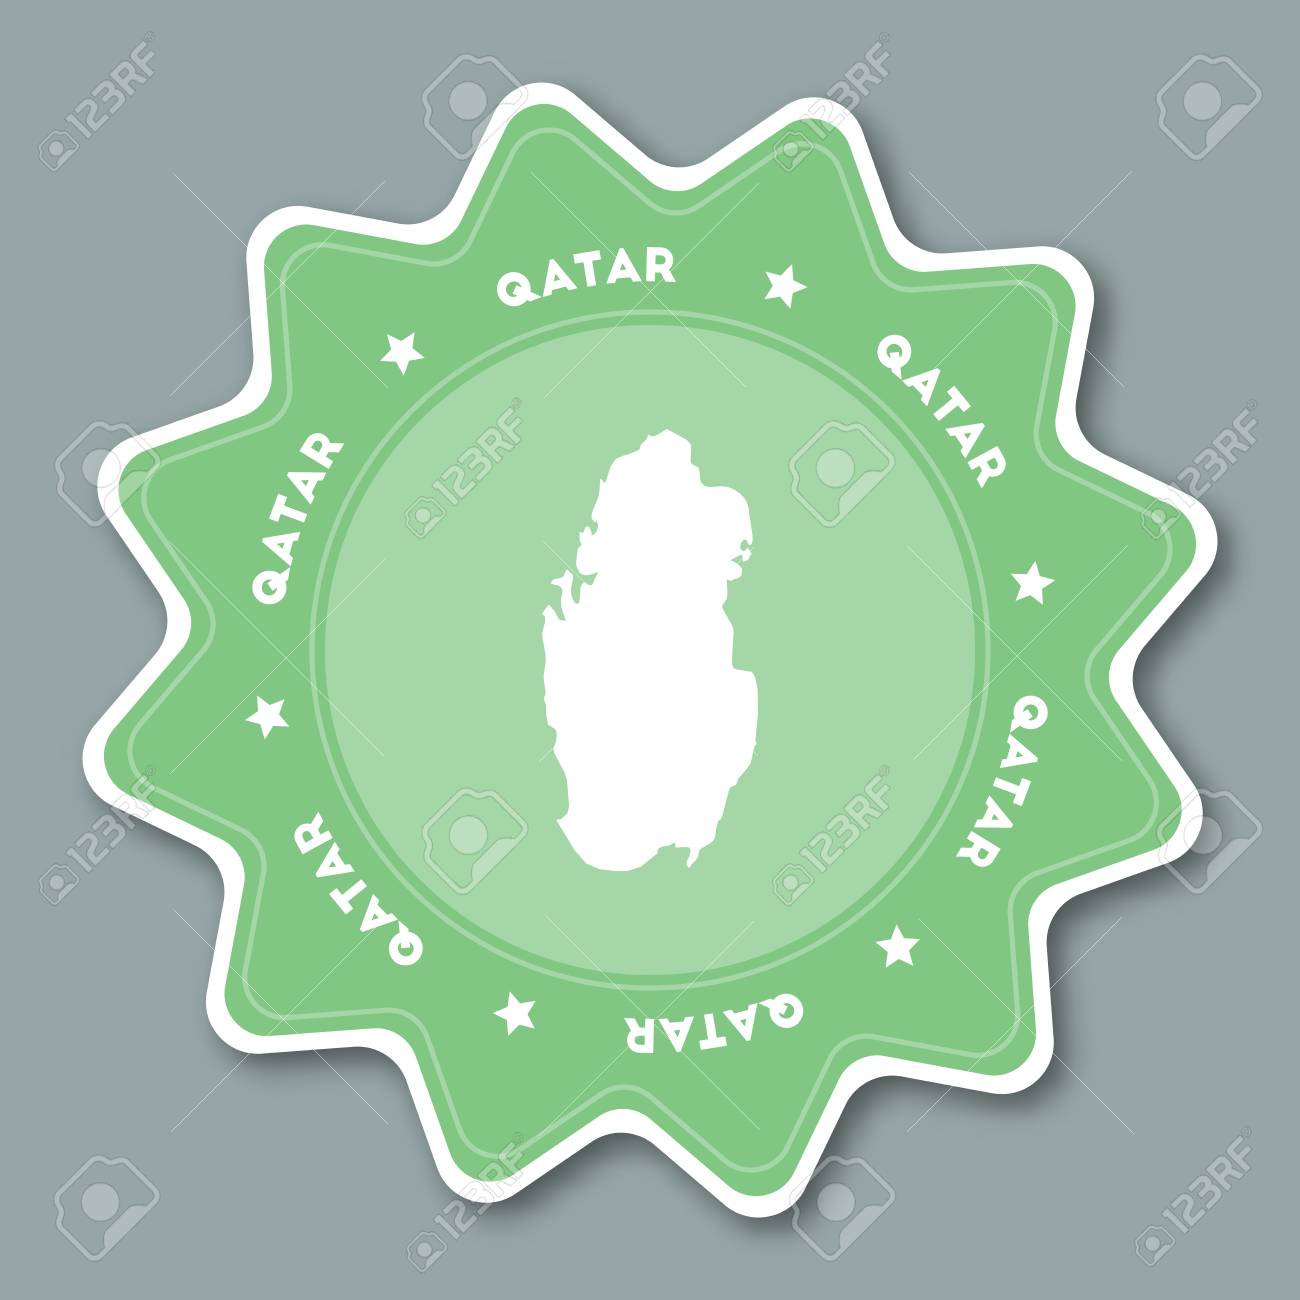 Qatar Map Sticker In Trendy Colors Star Shaped Travel Sticker